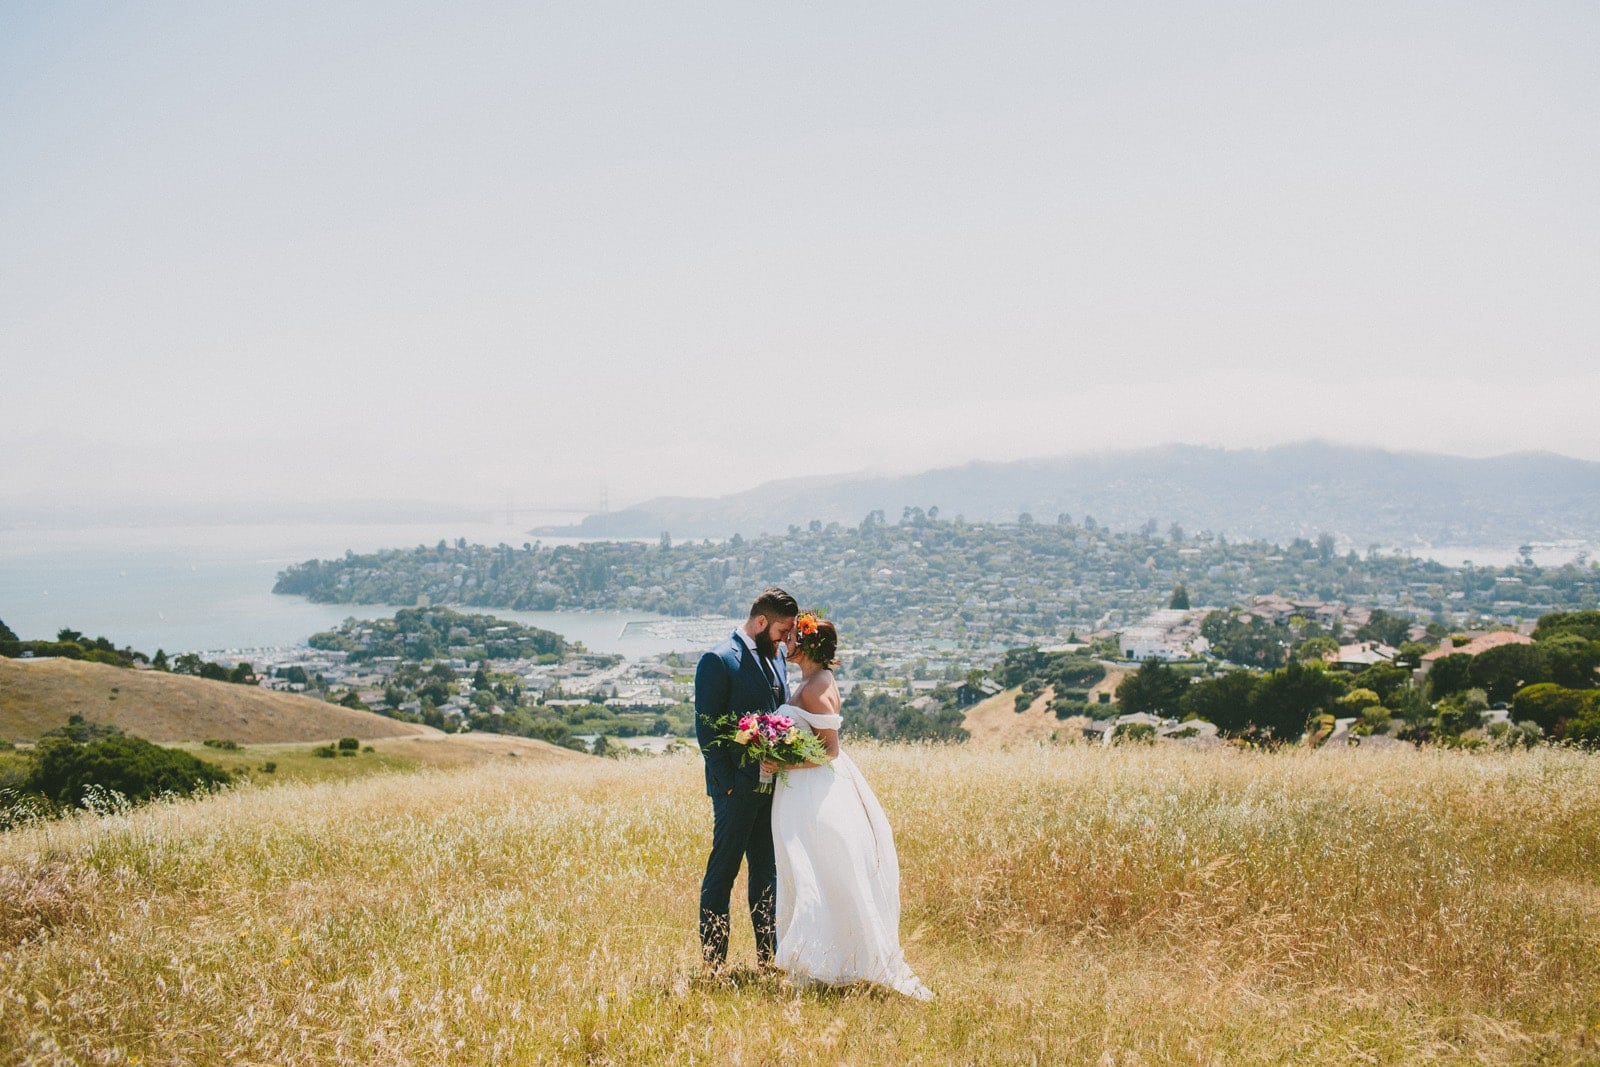 san_francisco_wedding_photographer_marin_county_wedding_001